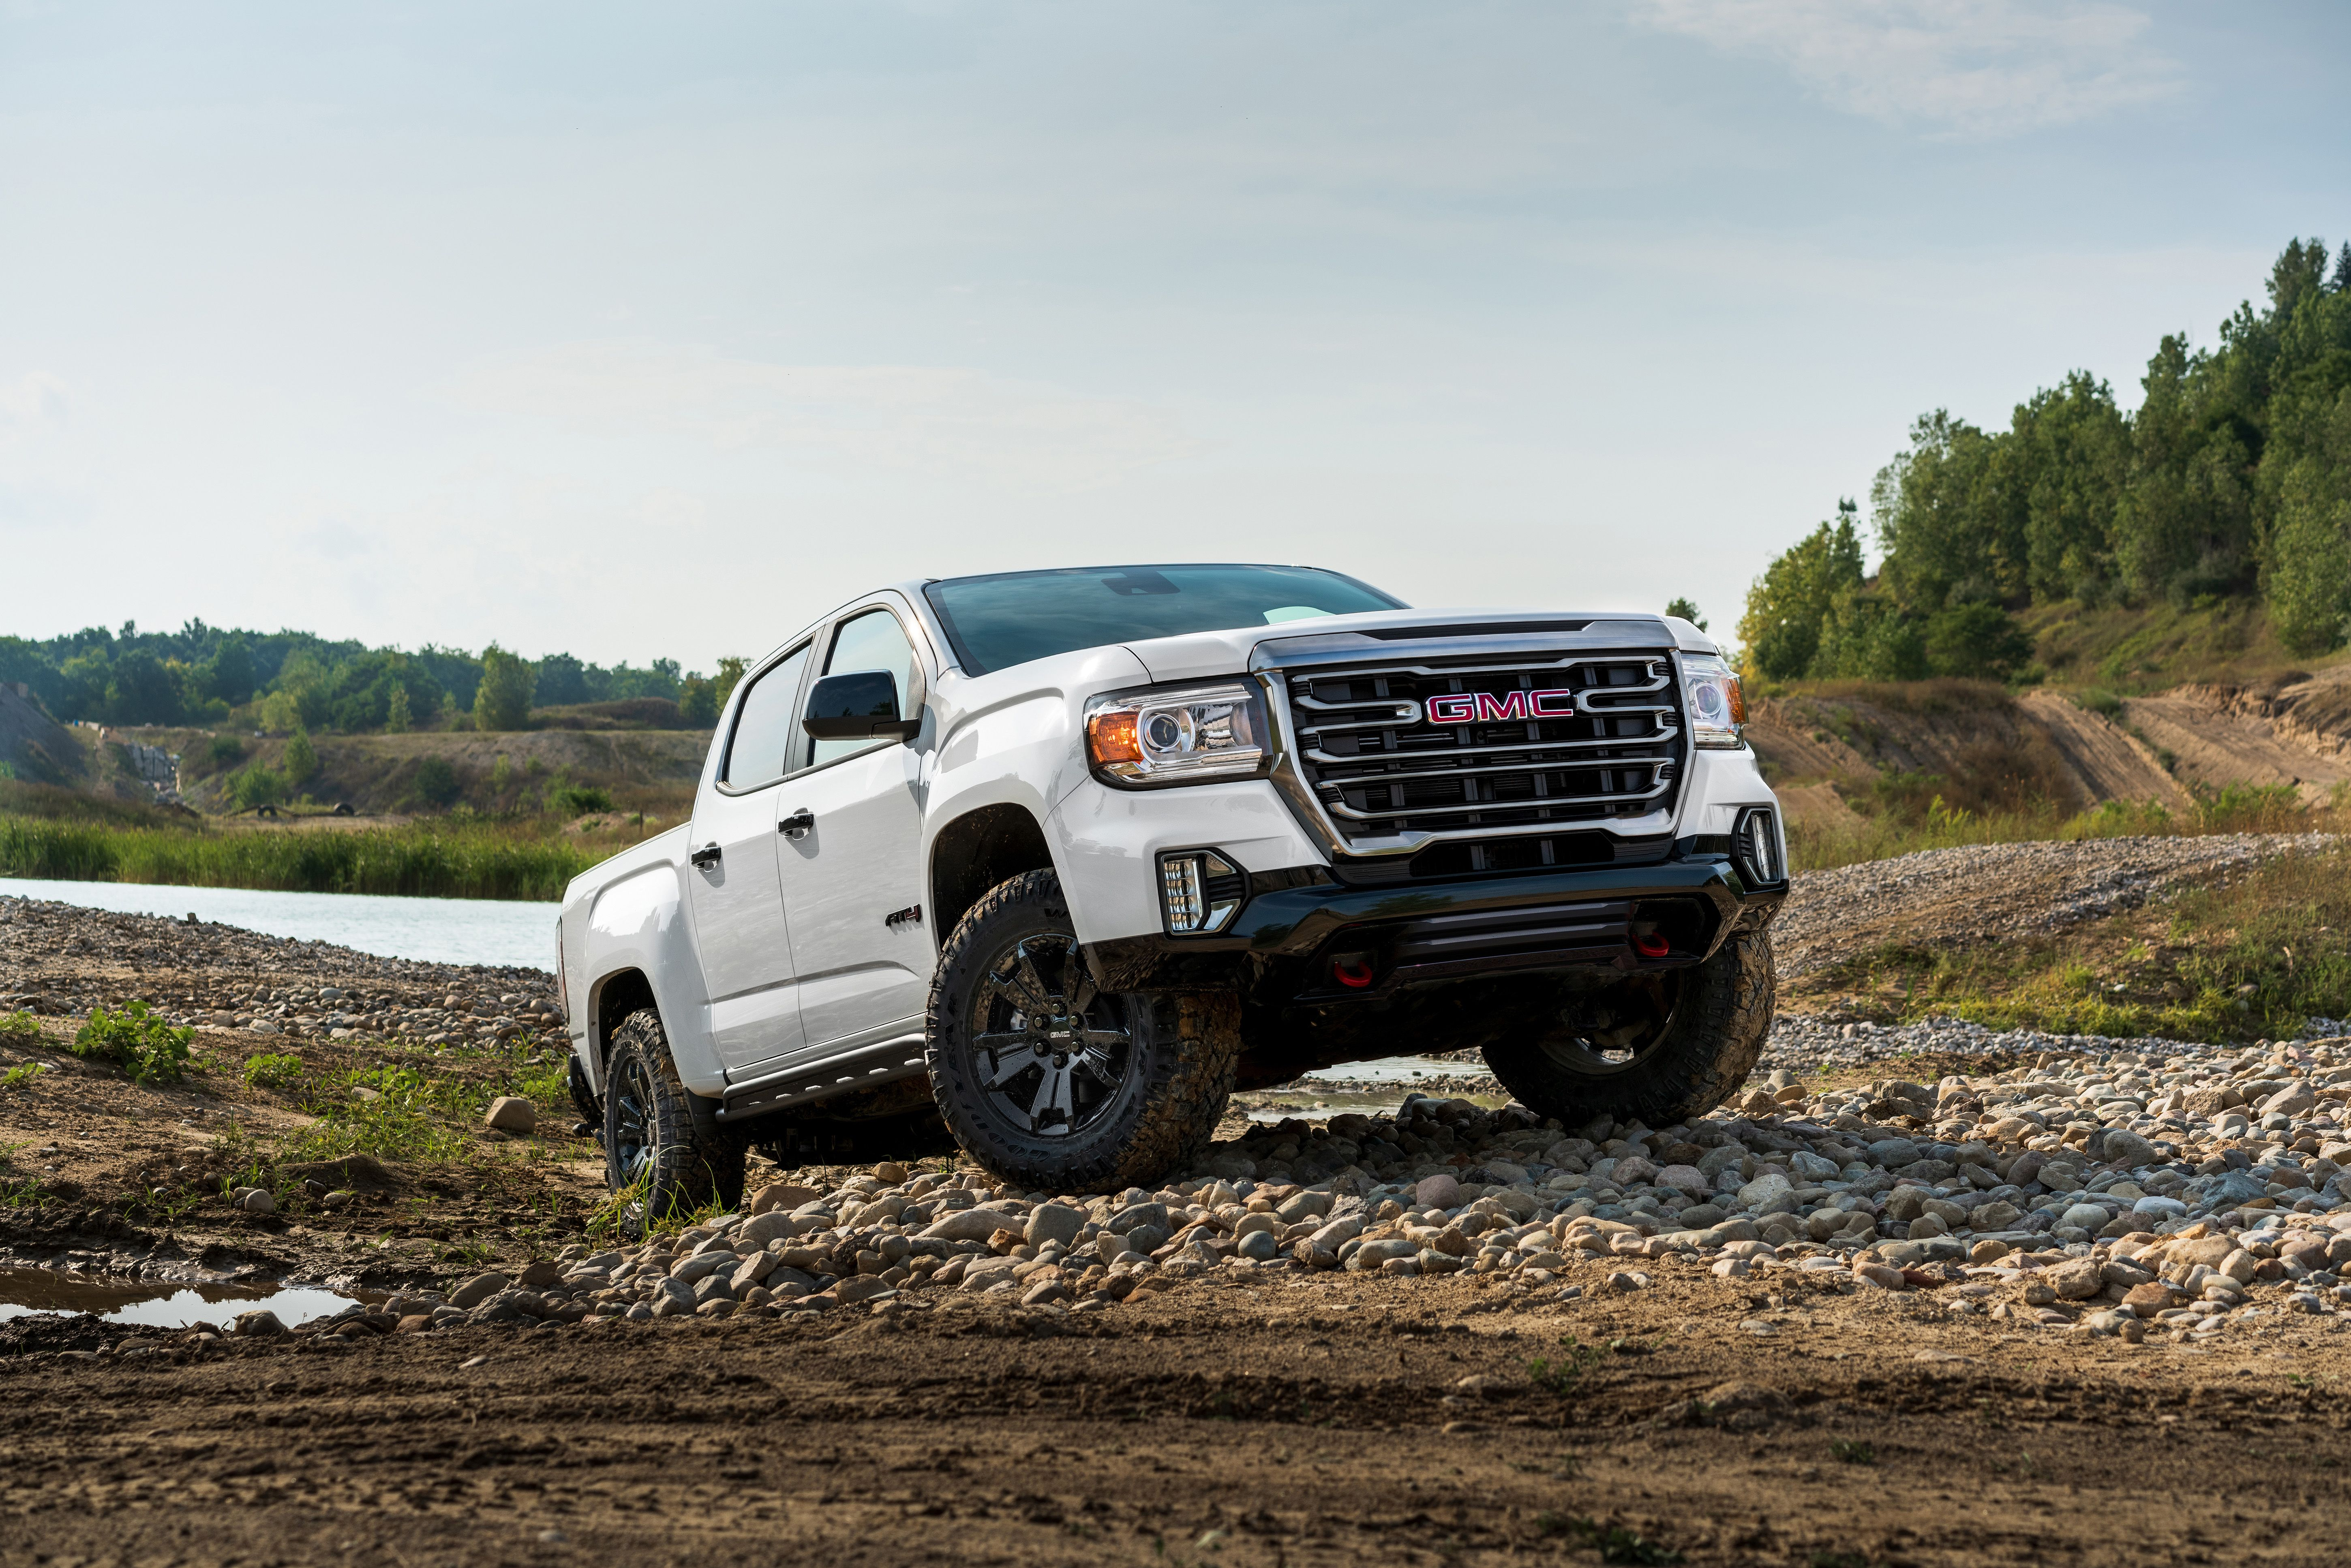 Gmc S Canyon At4 Off Road Performance Edition Is An Overland Ready Upgrade